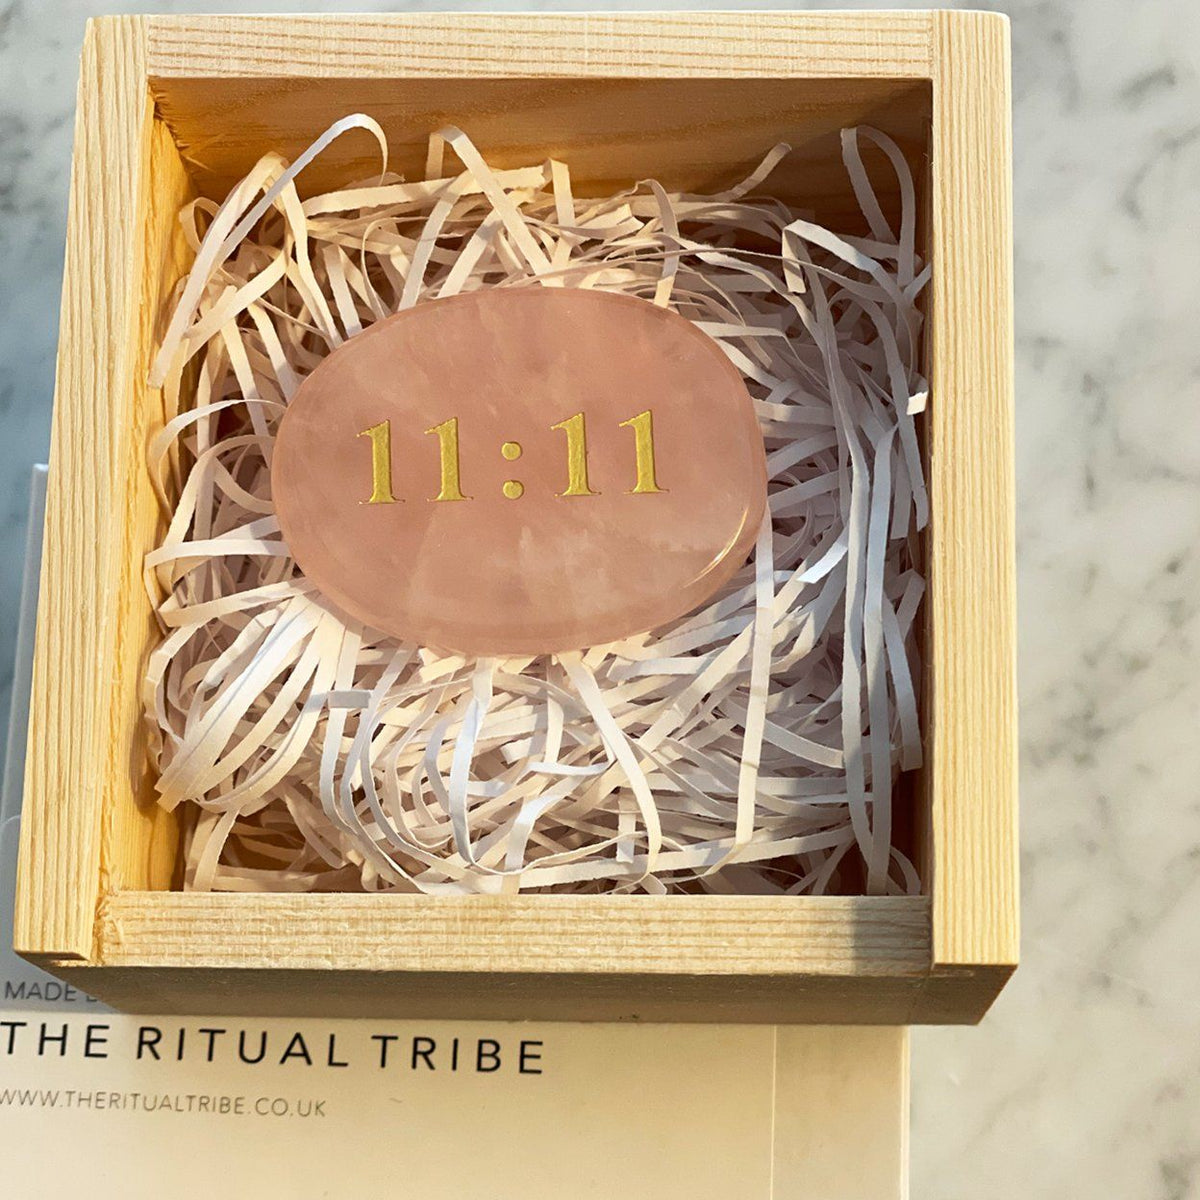 11:11 ~ Rose Quartz Palm Stone, Gift Boxed Red Tent Tribe